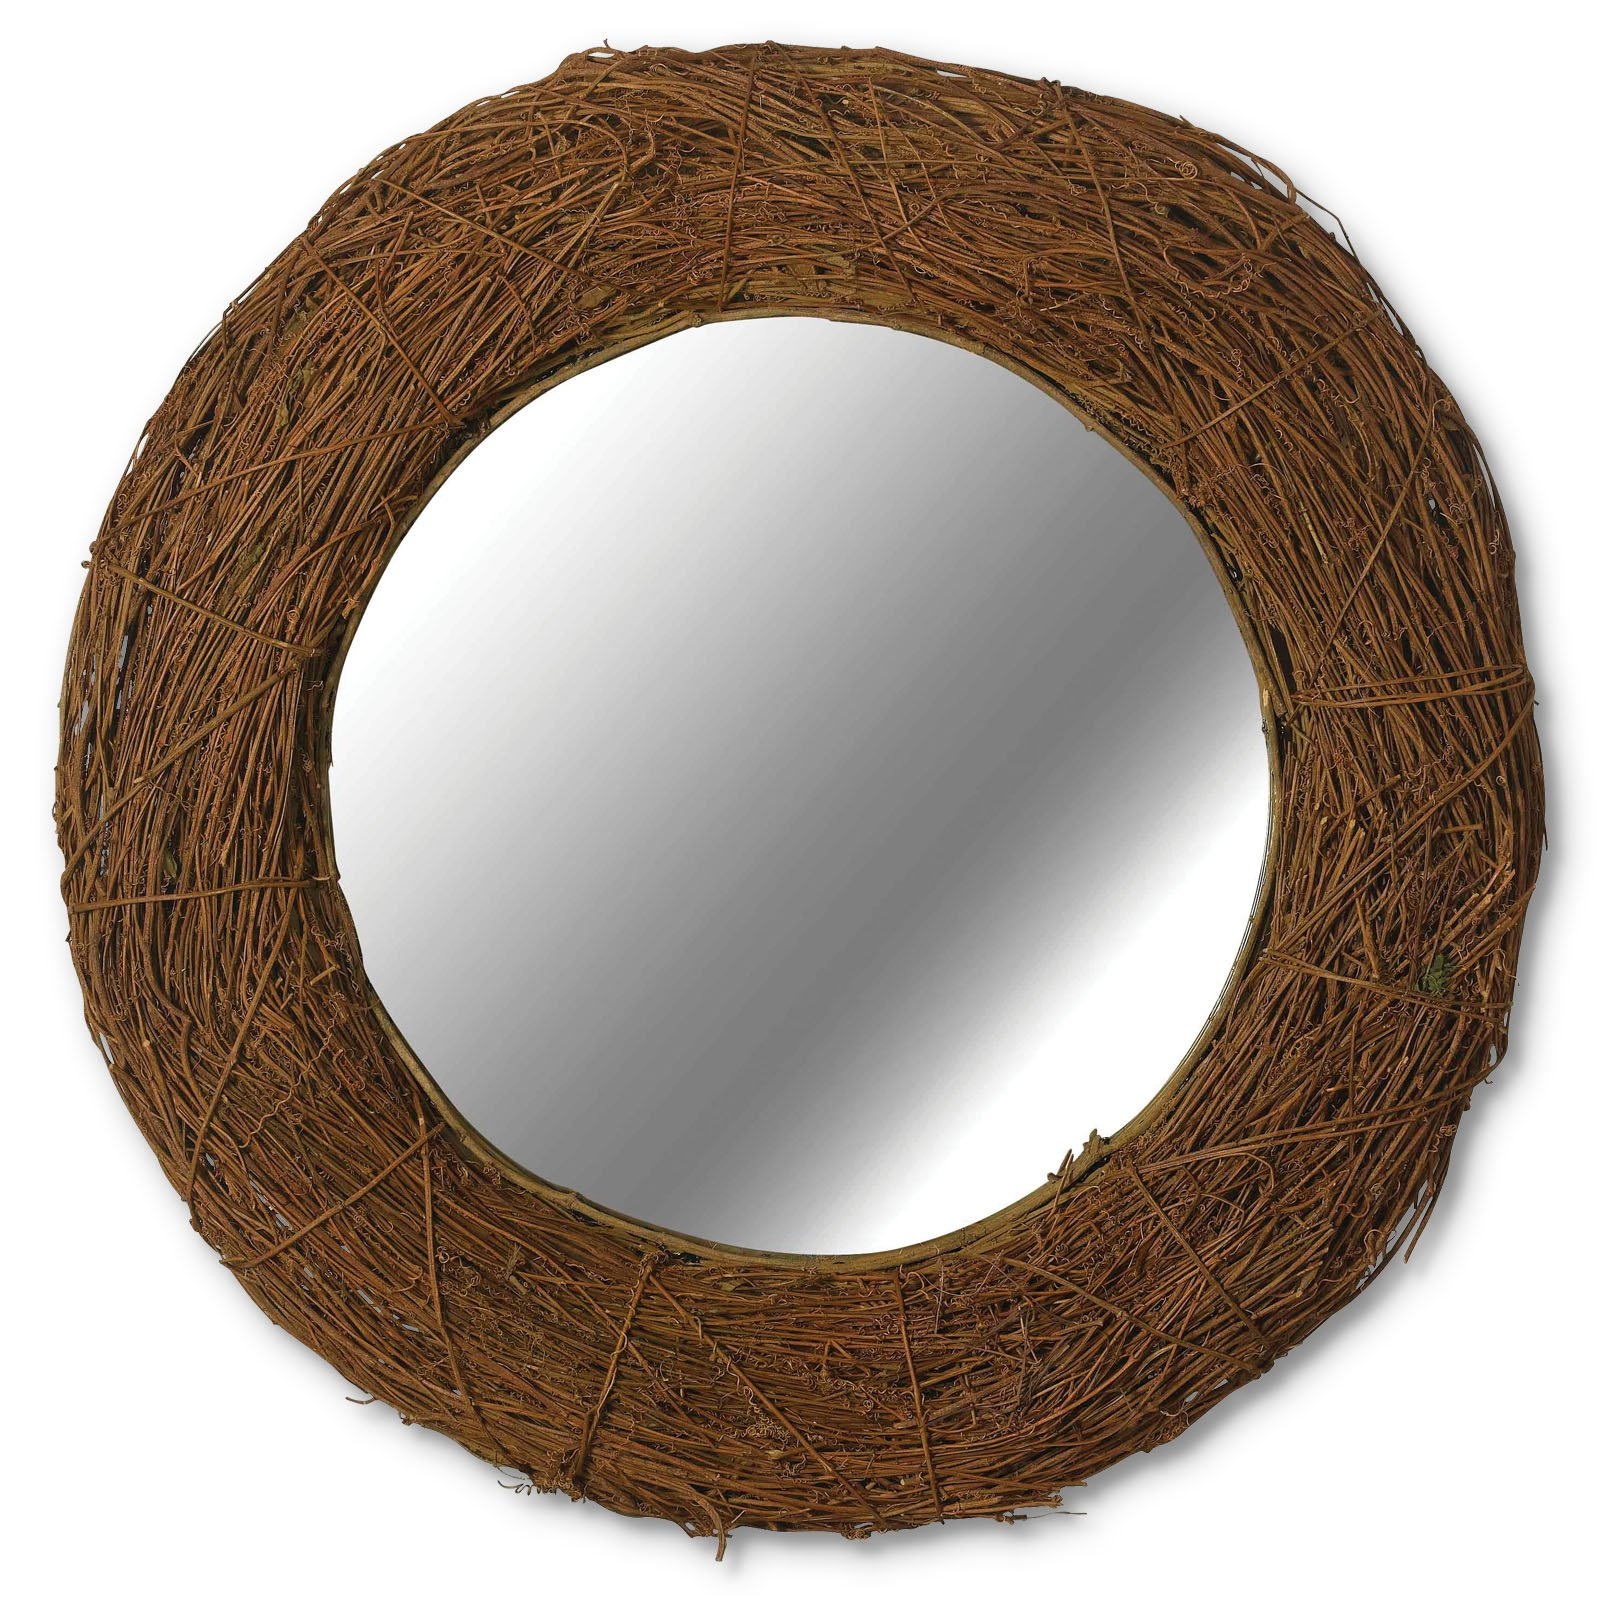 Kenroy Home Harvest Wall Mirror, Natural Rattan